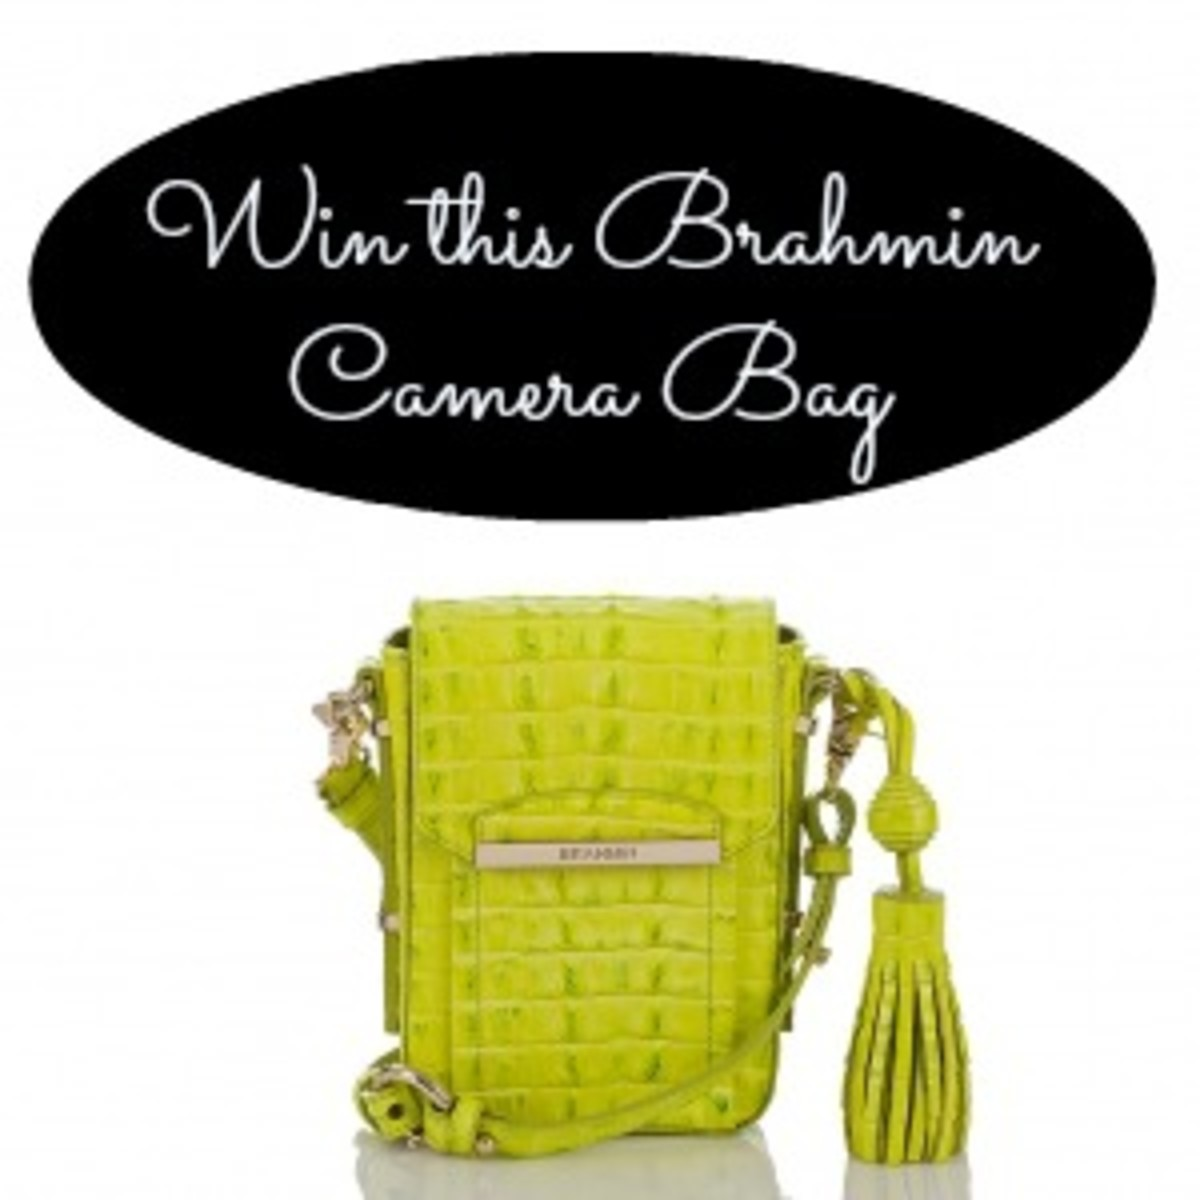 brahmin camera bag